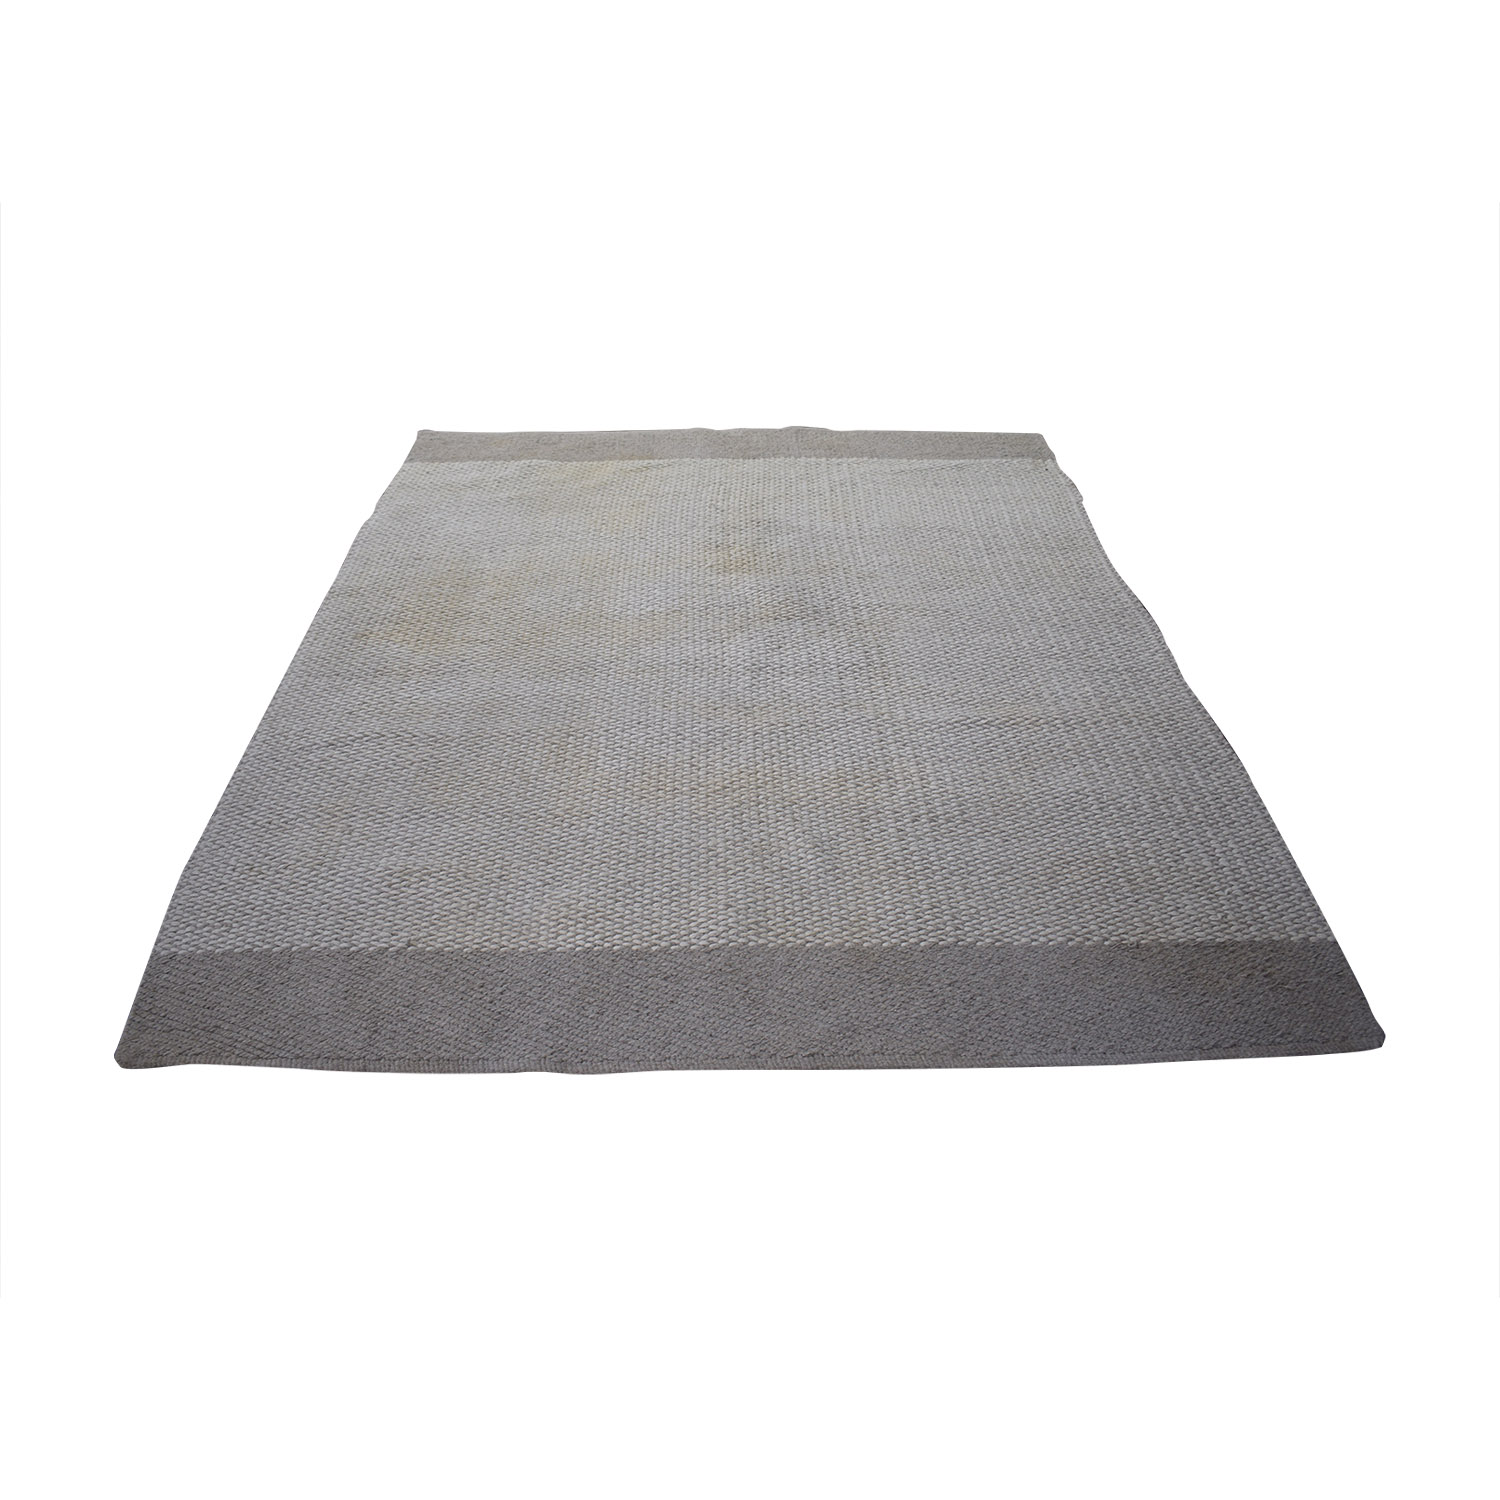 West Elm West Elm Oasis Flat Weave Rug on sale